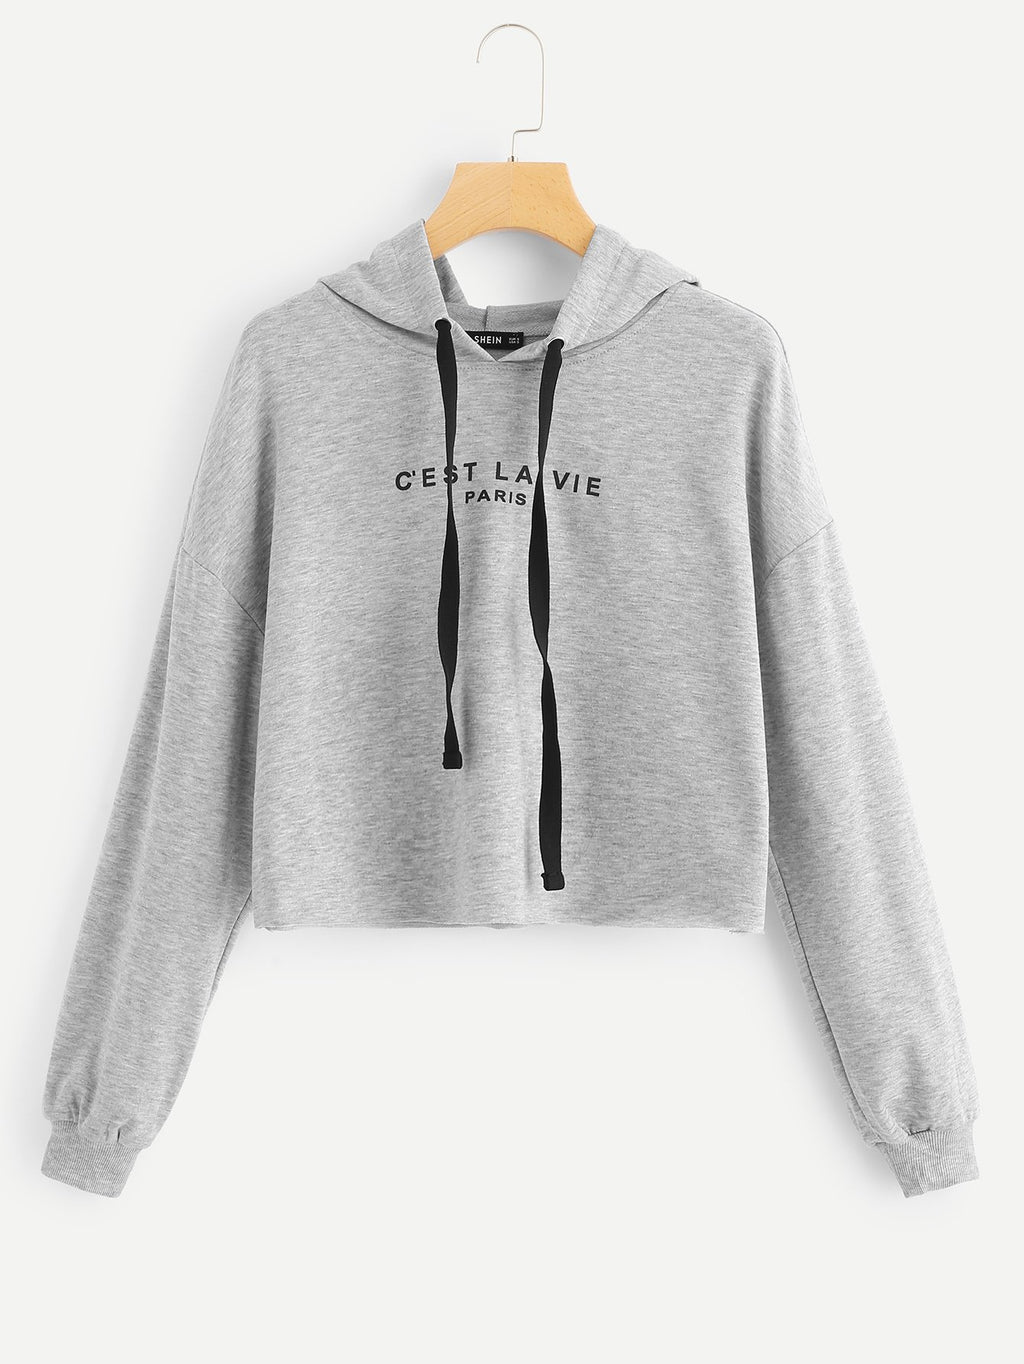 Drop Shoulder Drawstring Hoodie Crop Sweatshirt-Sunshine's Boutique & Gifts